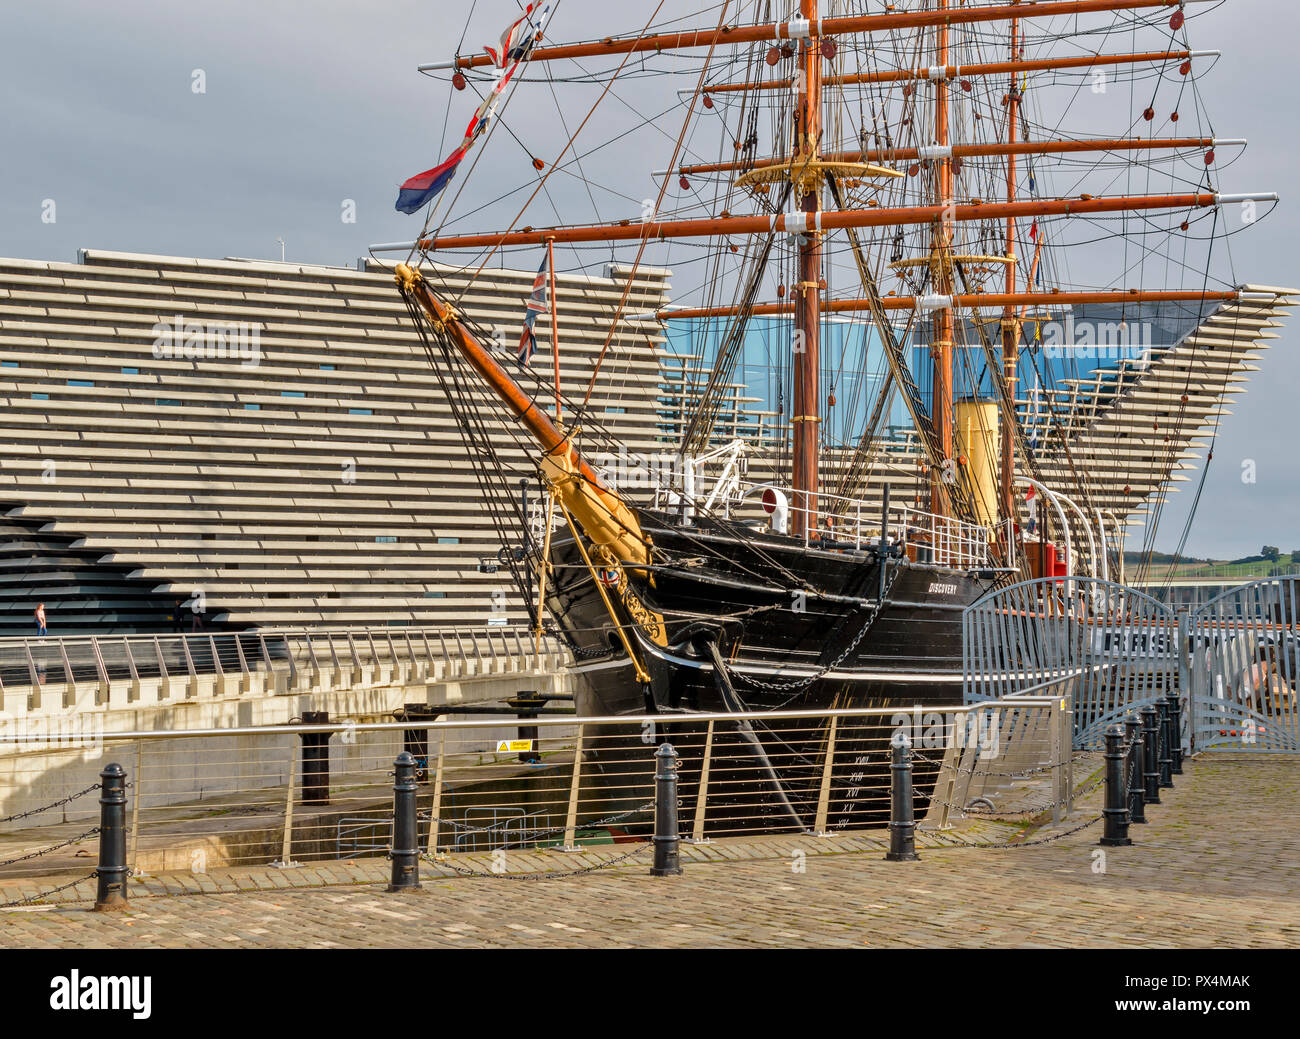 RSS DISCOVERY SHIP LYING AT BERTH OUTSIDE THE V A DESIGN MUSEUM DUNDEE SCOTLAND - Stock Image